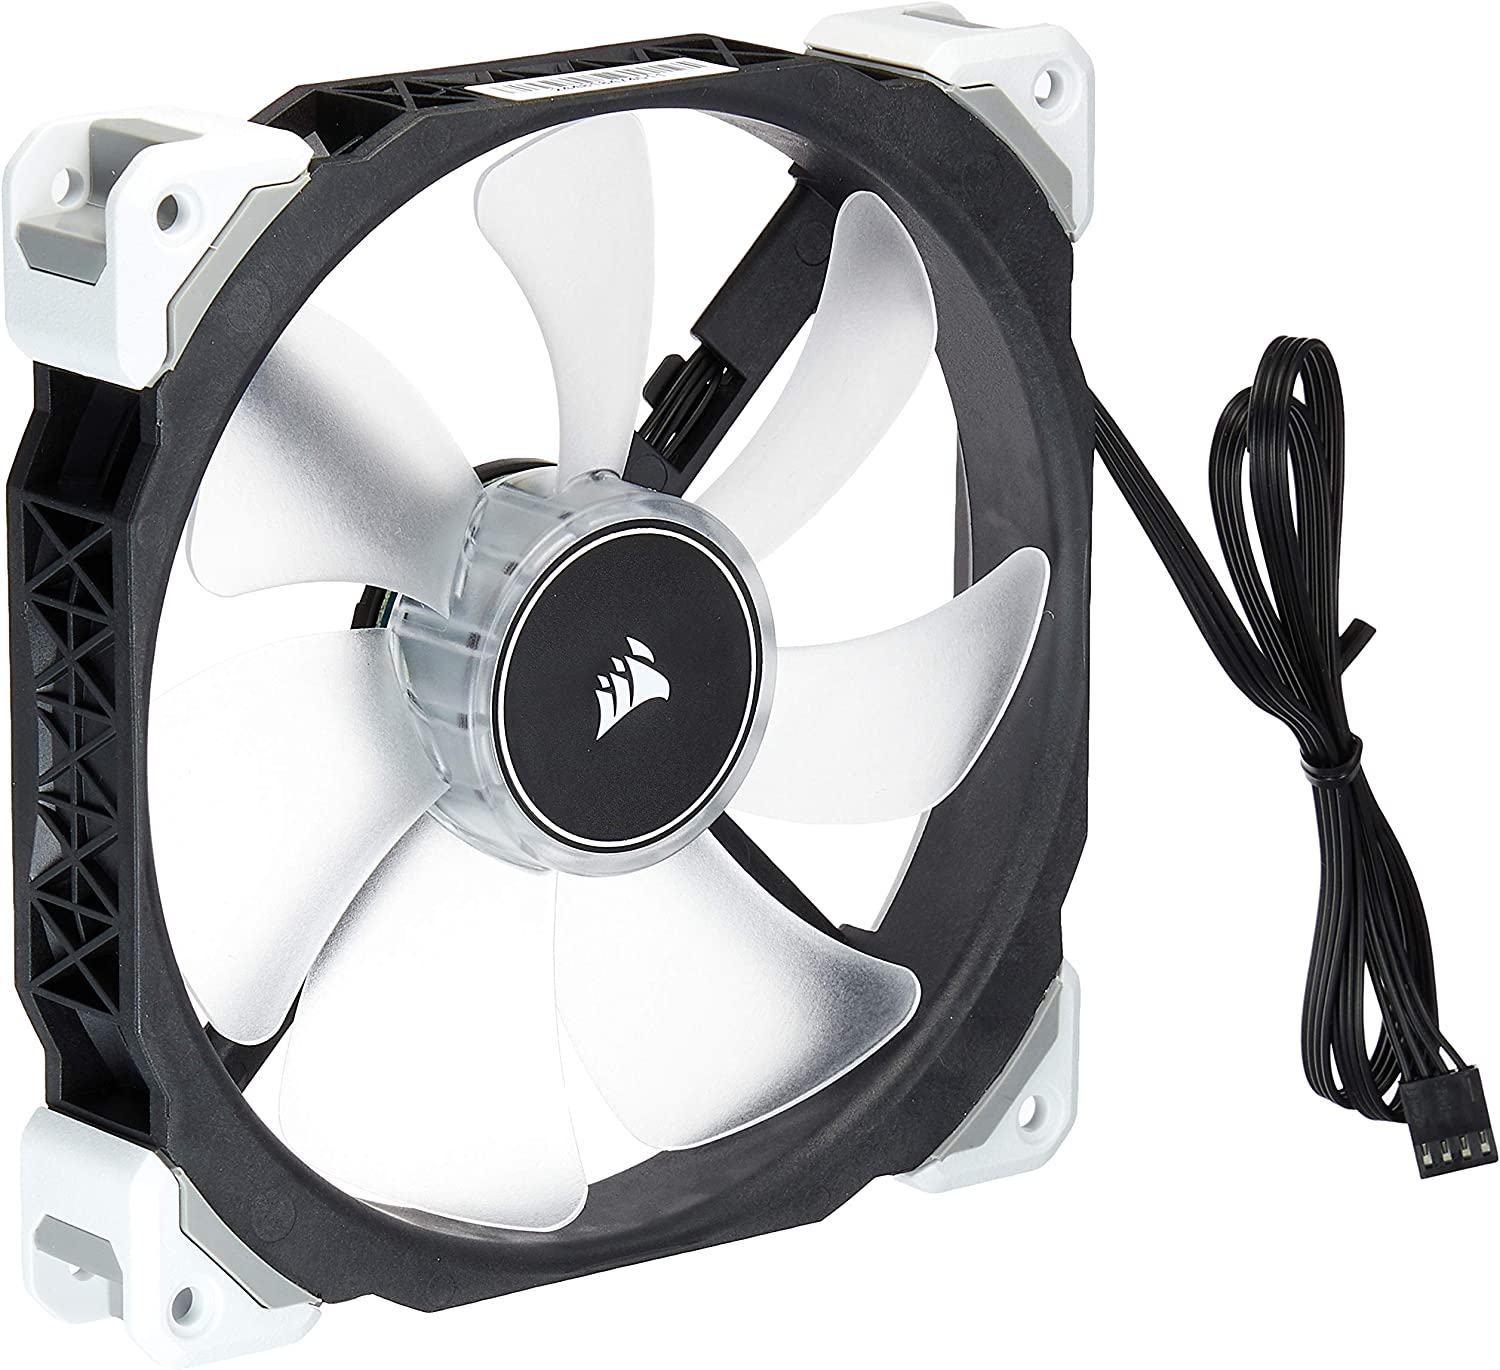 140mm Premium Magnetic Levitation Cooling Fan CO-9050046-WW Corsair ML140 Pro LED White